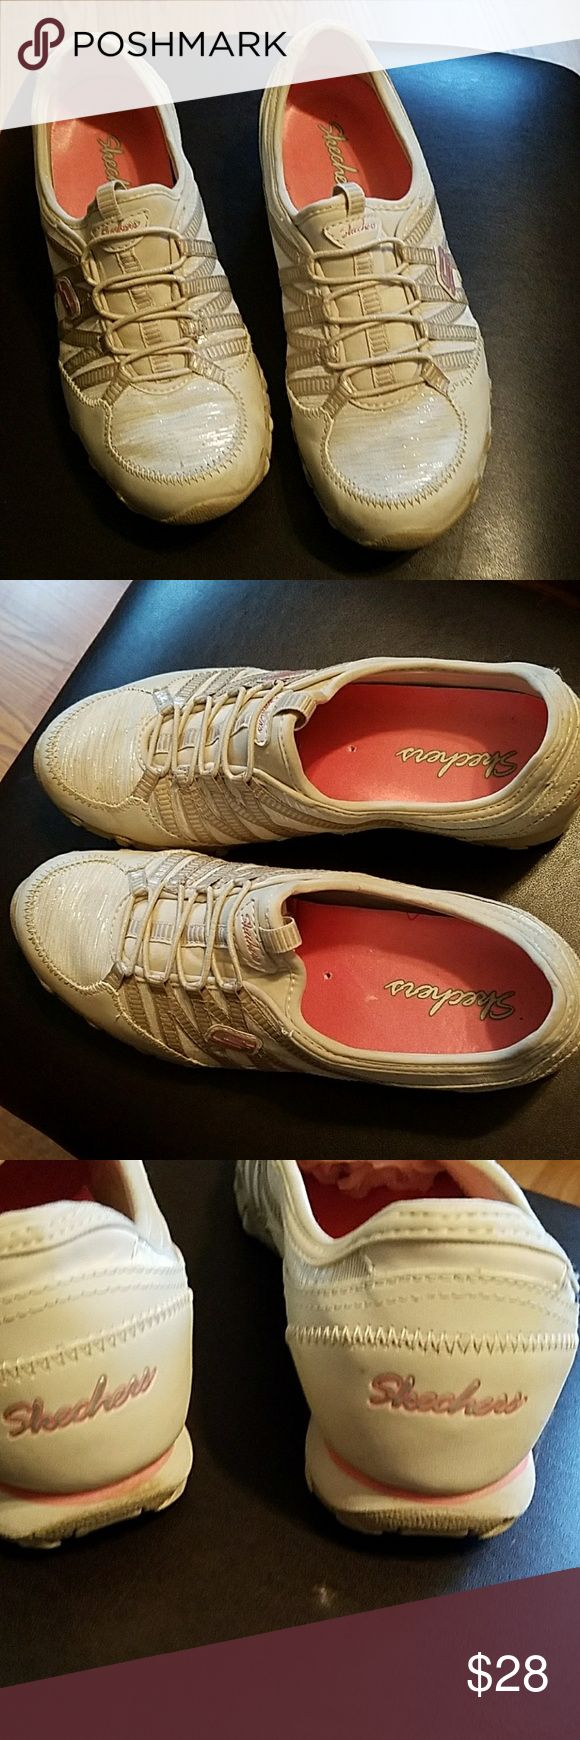 Ladies skechers,  as 8.5 These memory foam Skechers are in excellent condition, great coral accent color with a little silver shine to them Skechers Shoes